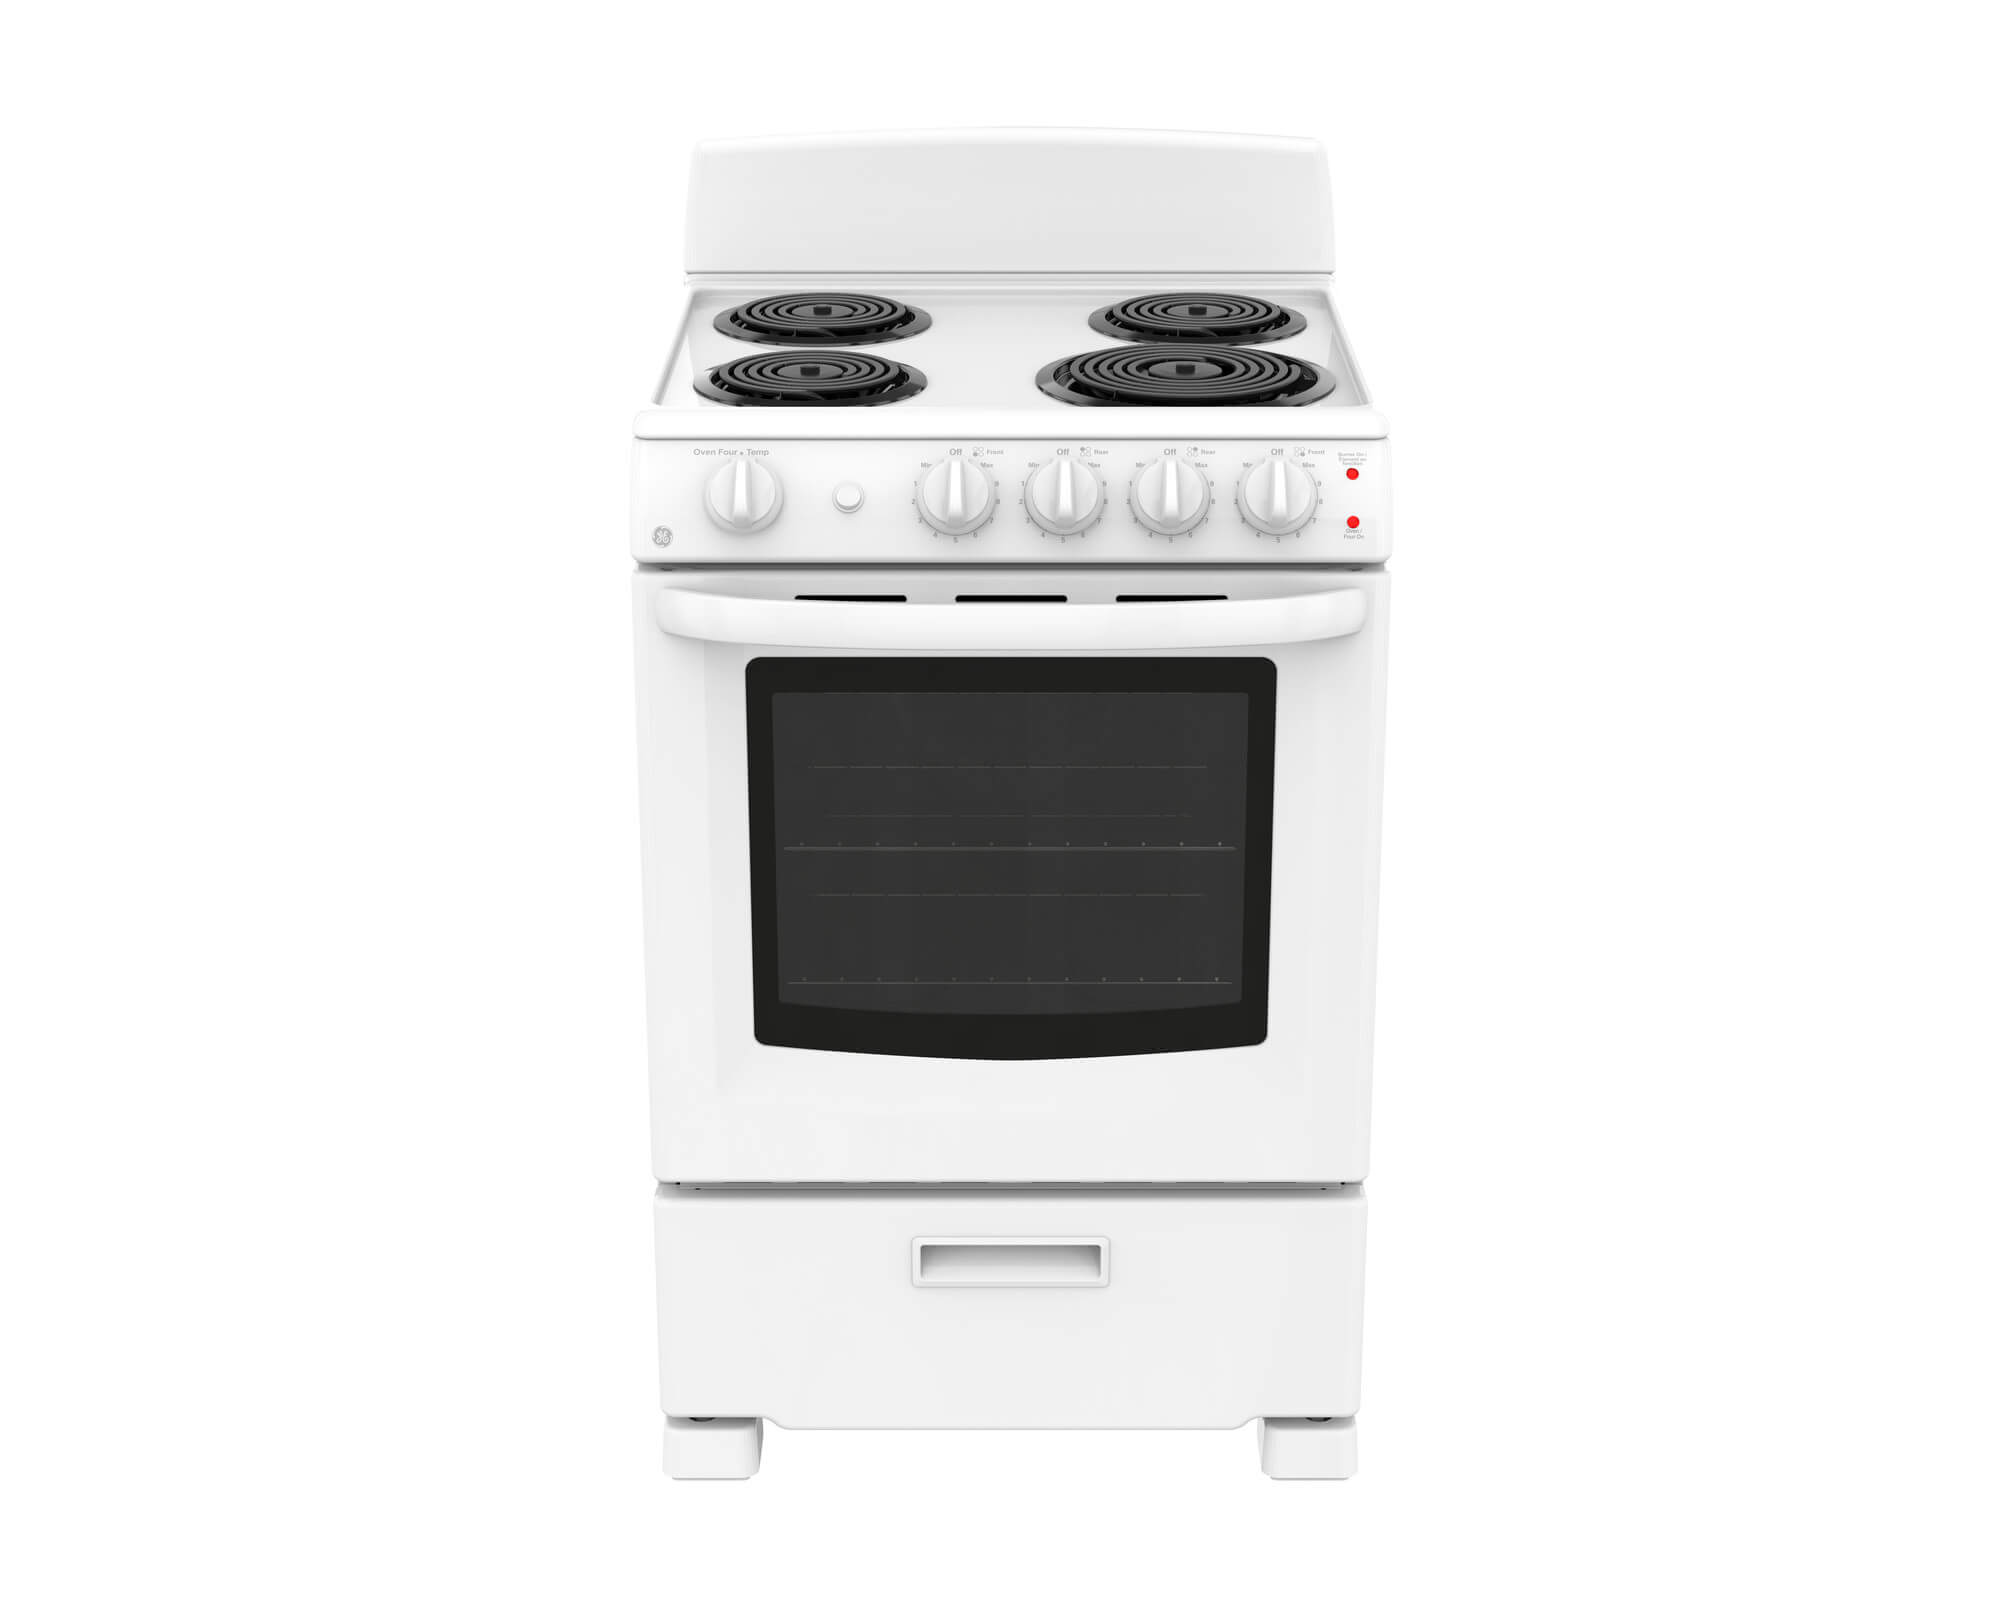 GE Range 24 White JCAS300DMWW in White color showcased by Corbeil Electro Store